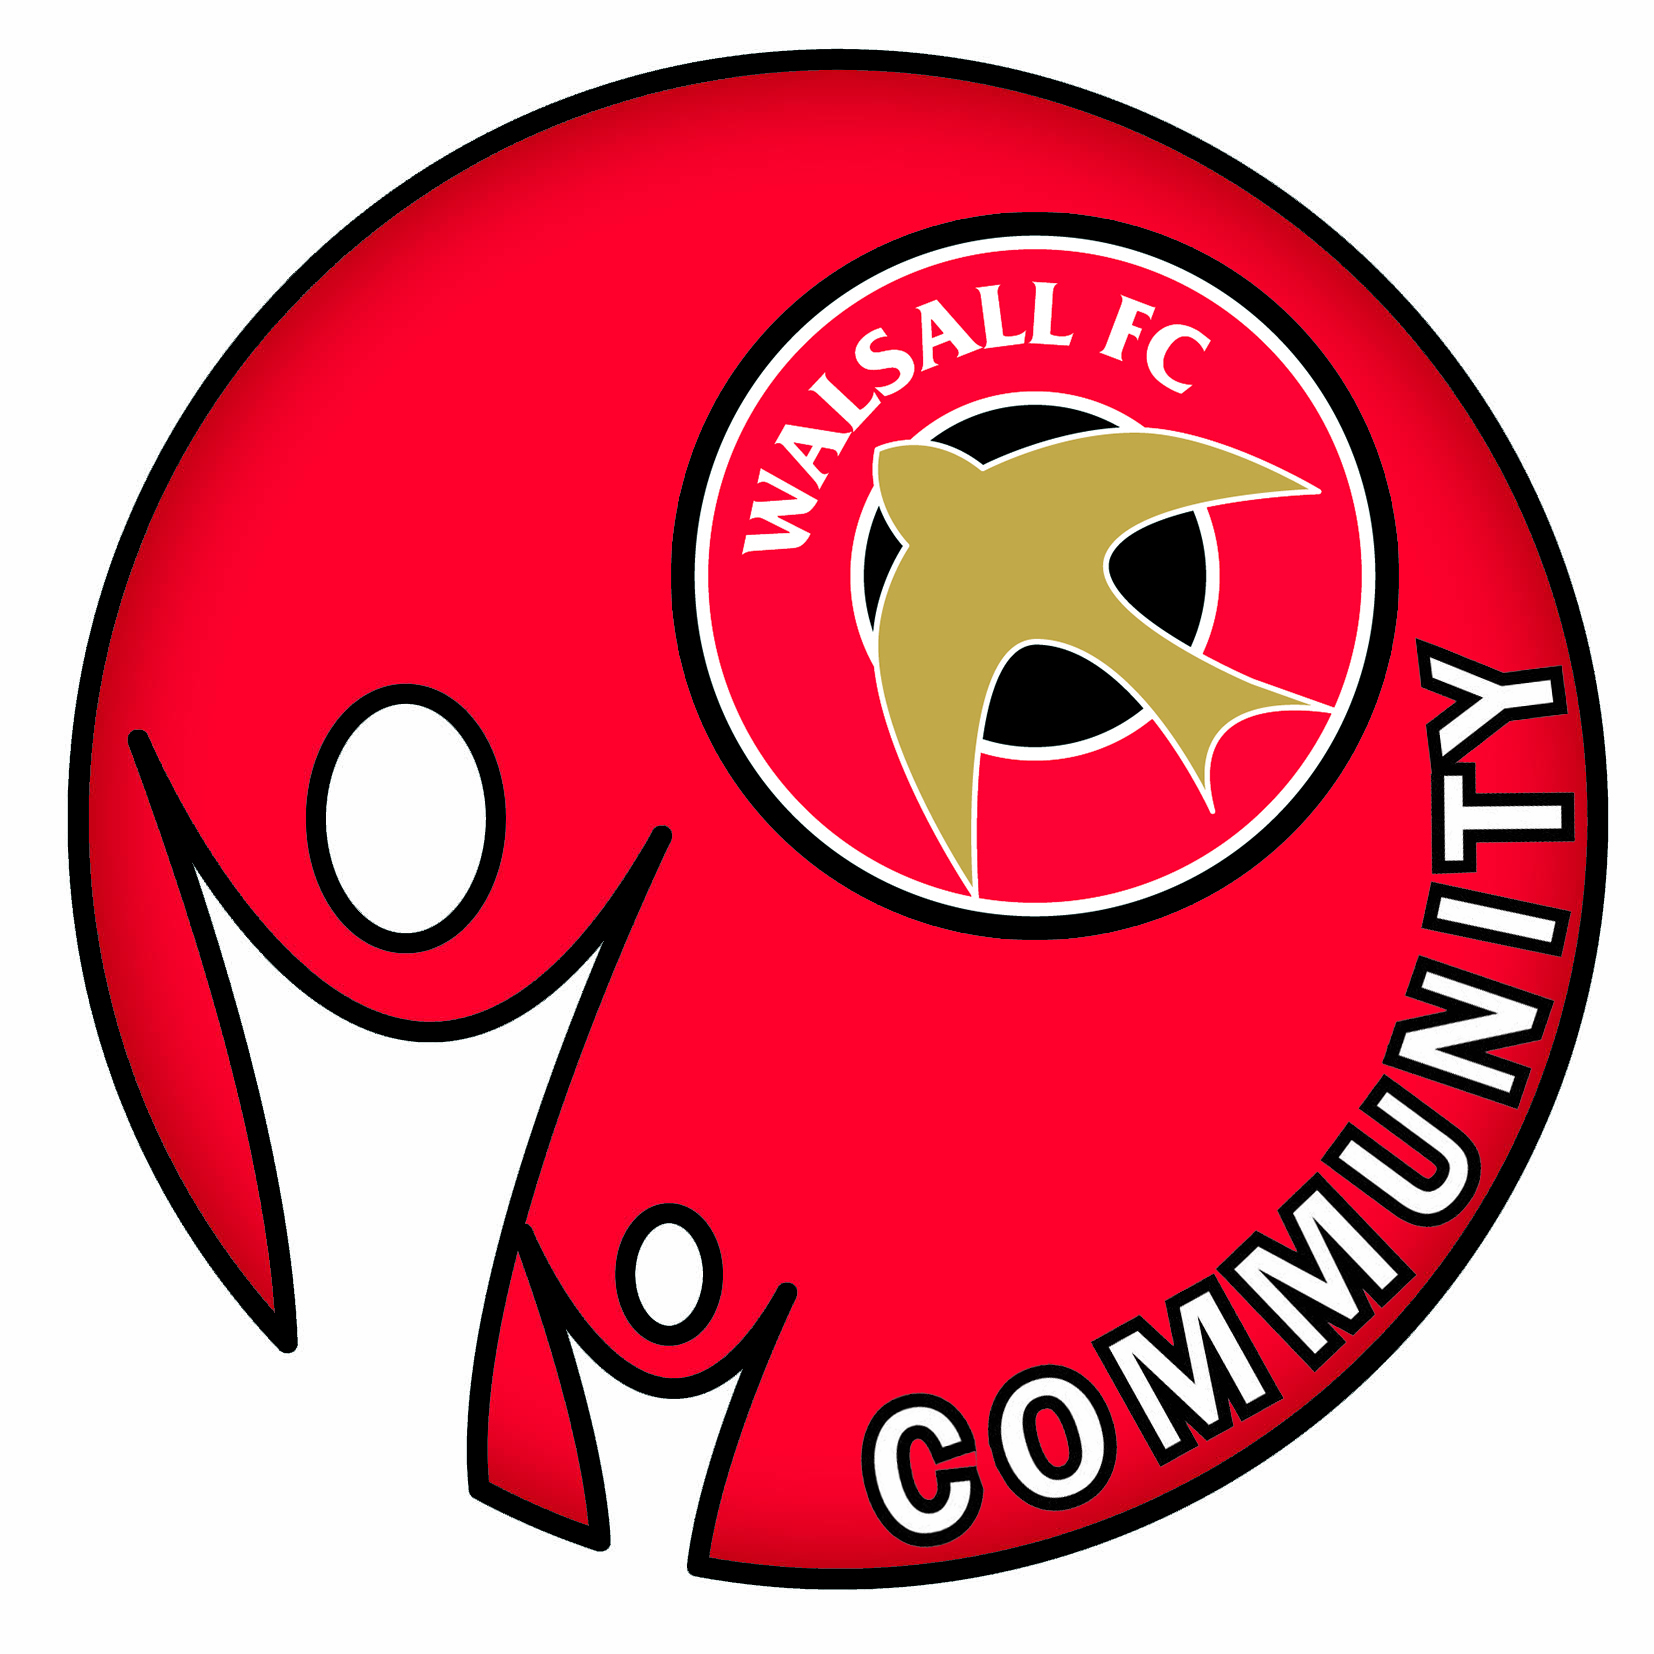 Walsall FC Community Programme